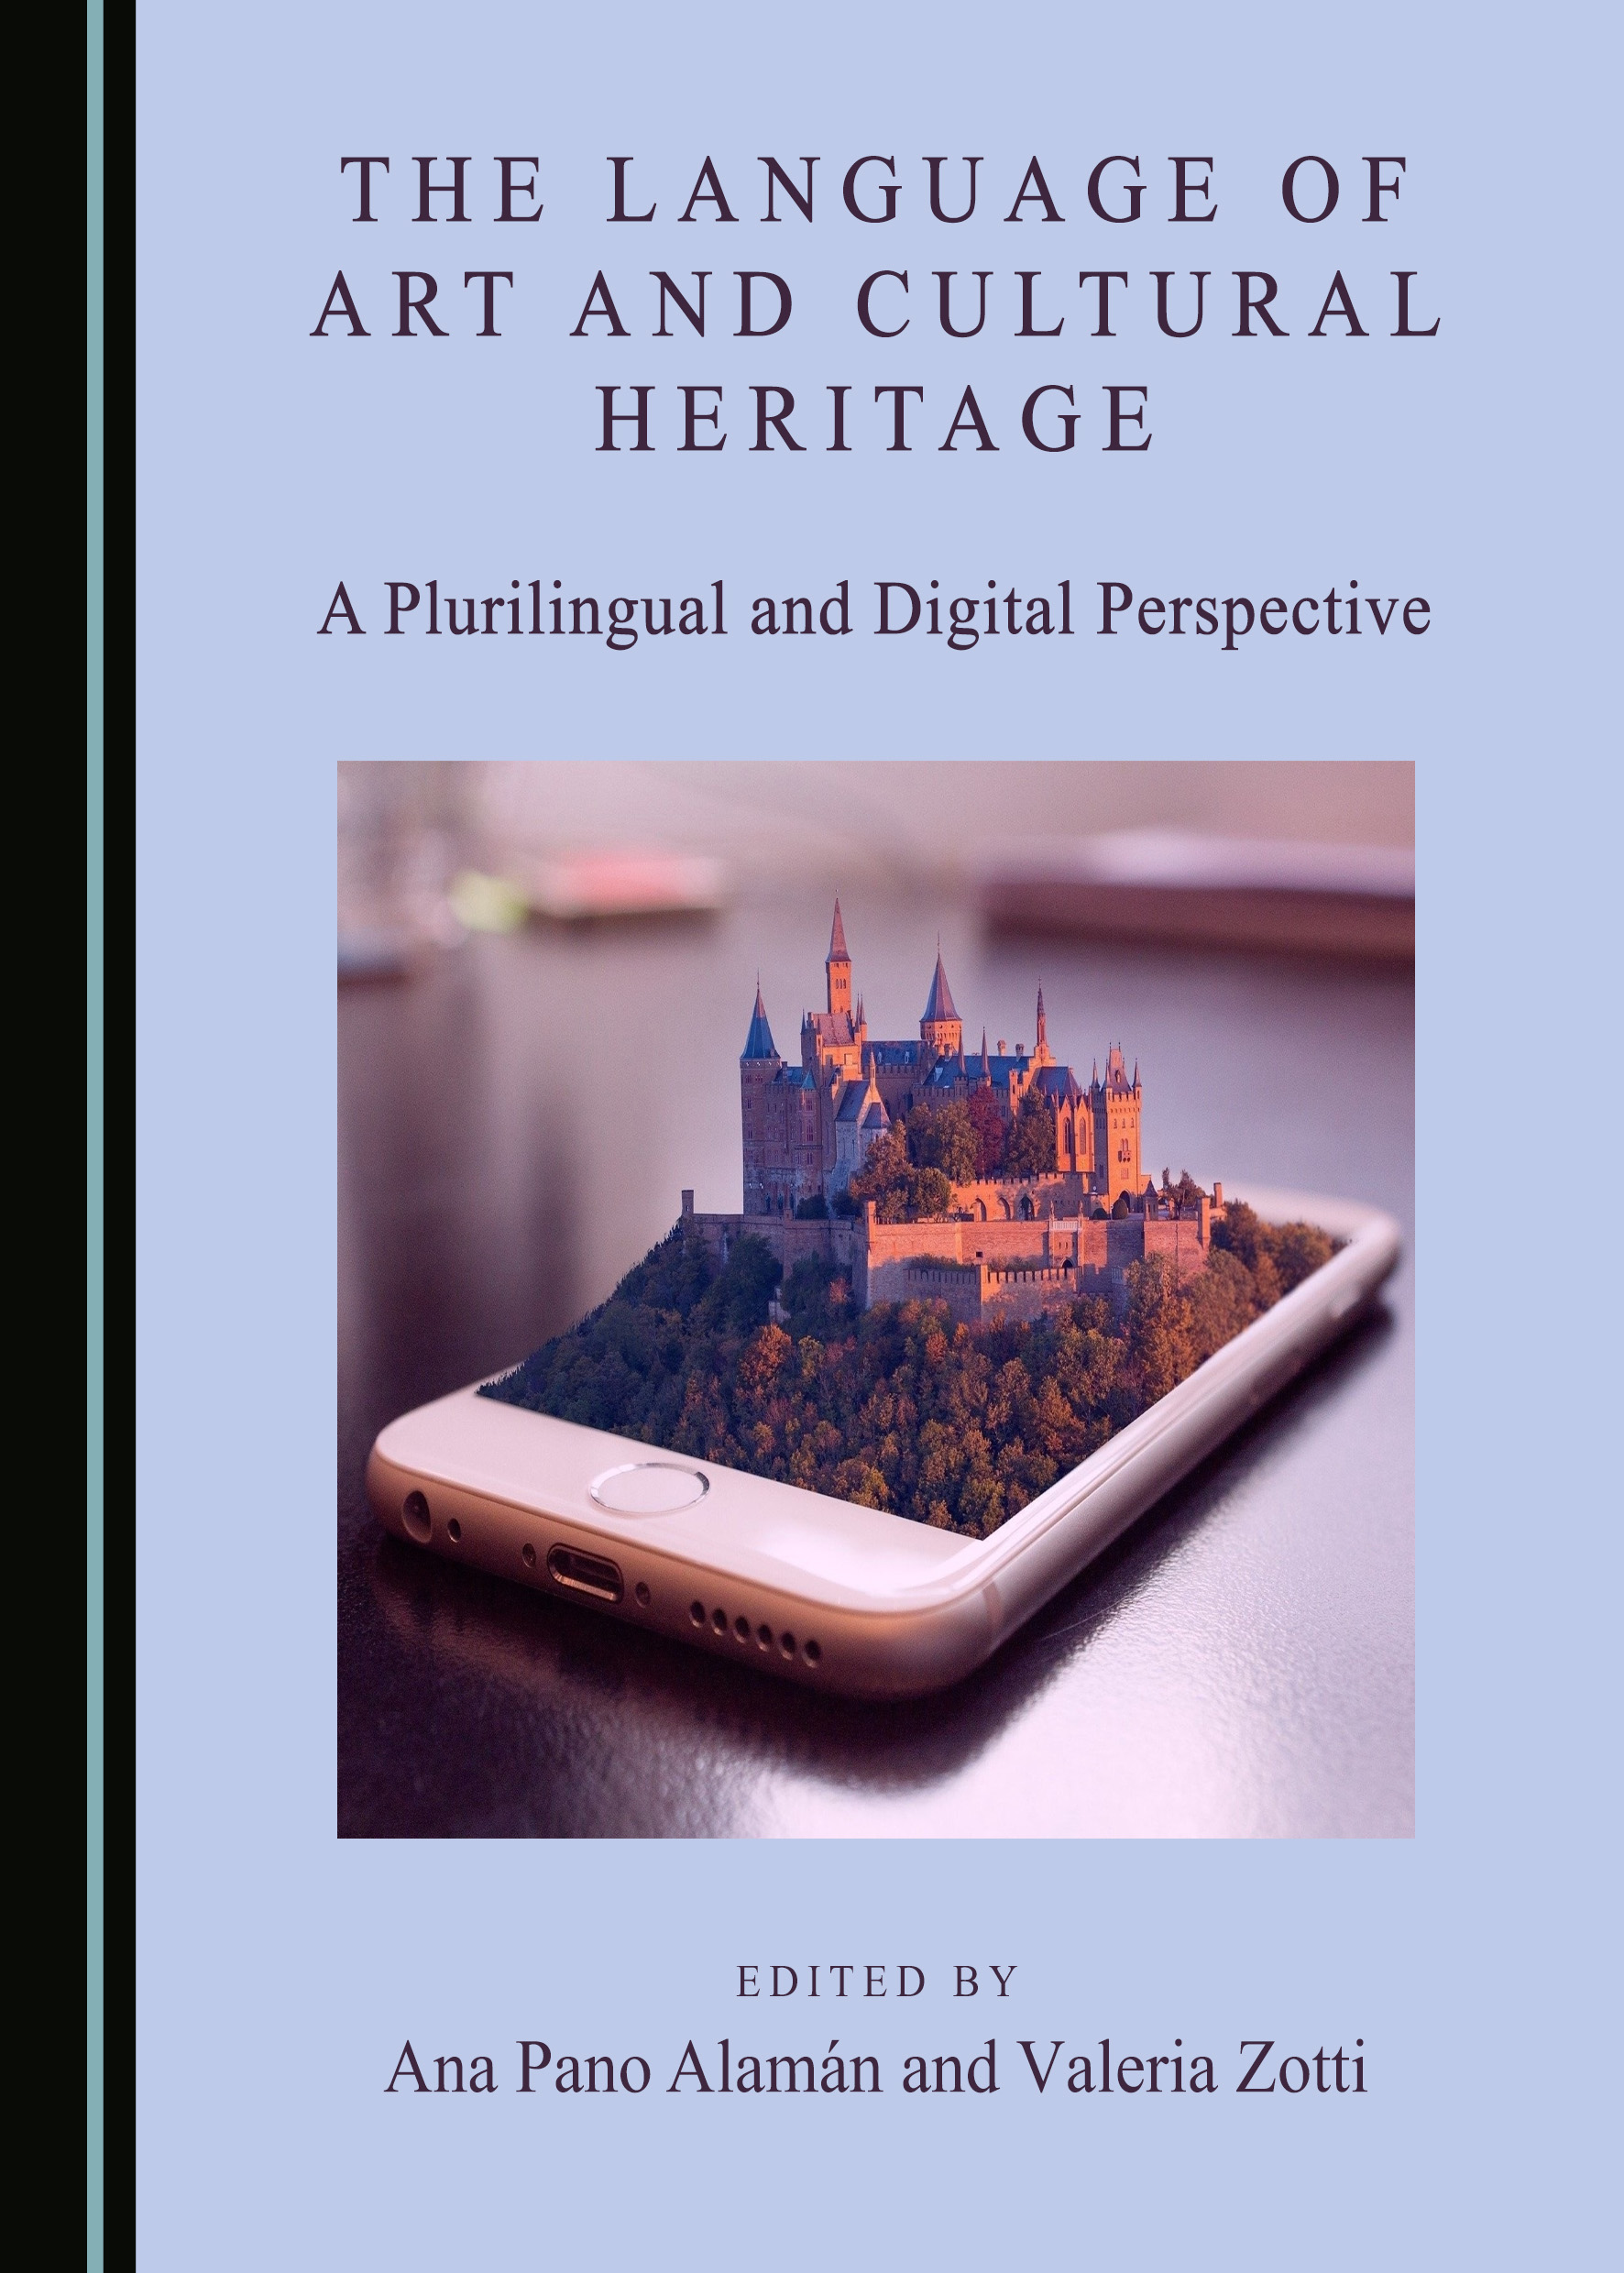 The Language of Art and Cultural Heritage: A Plurilingual and Digital Perspective